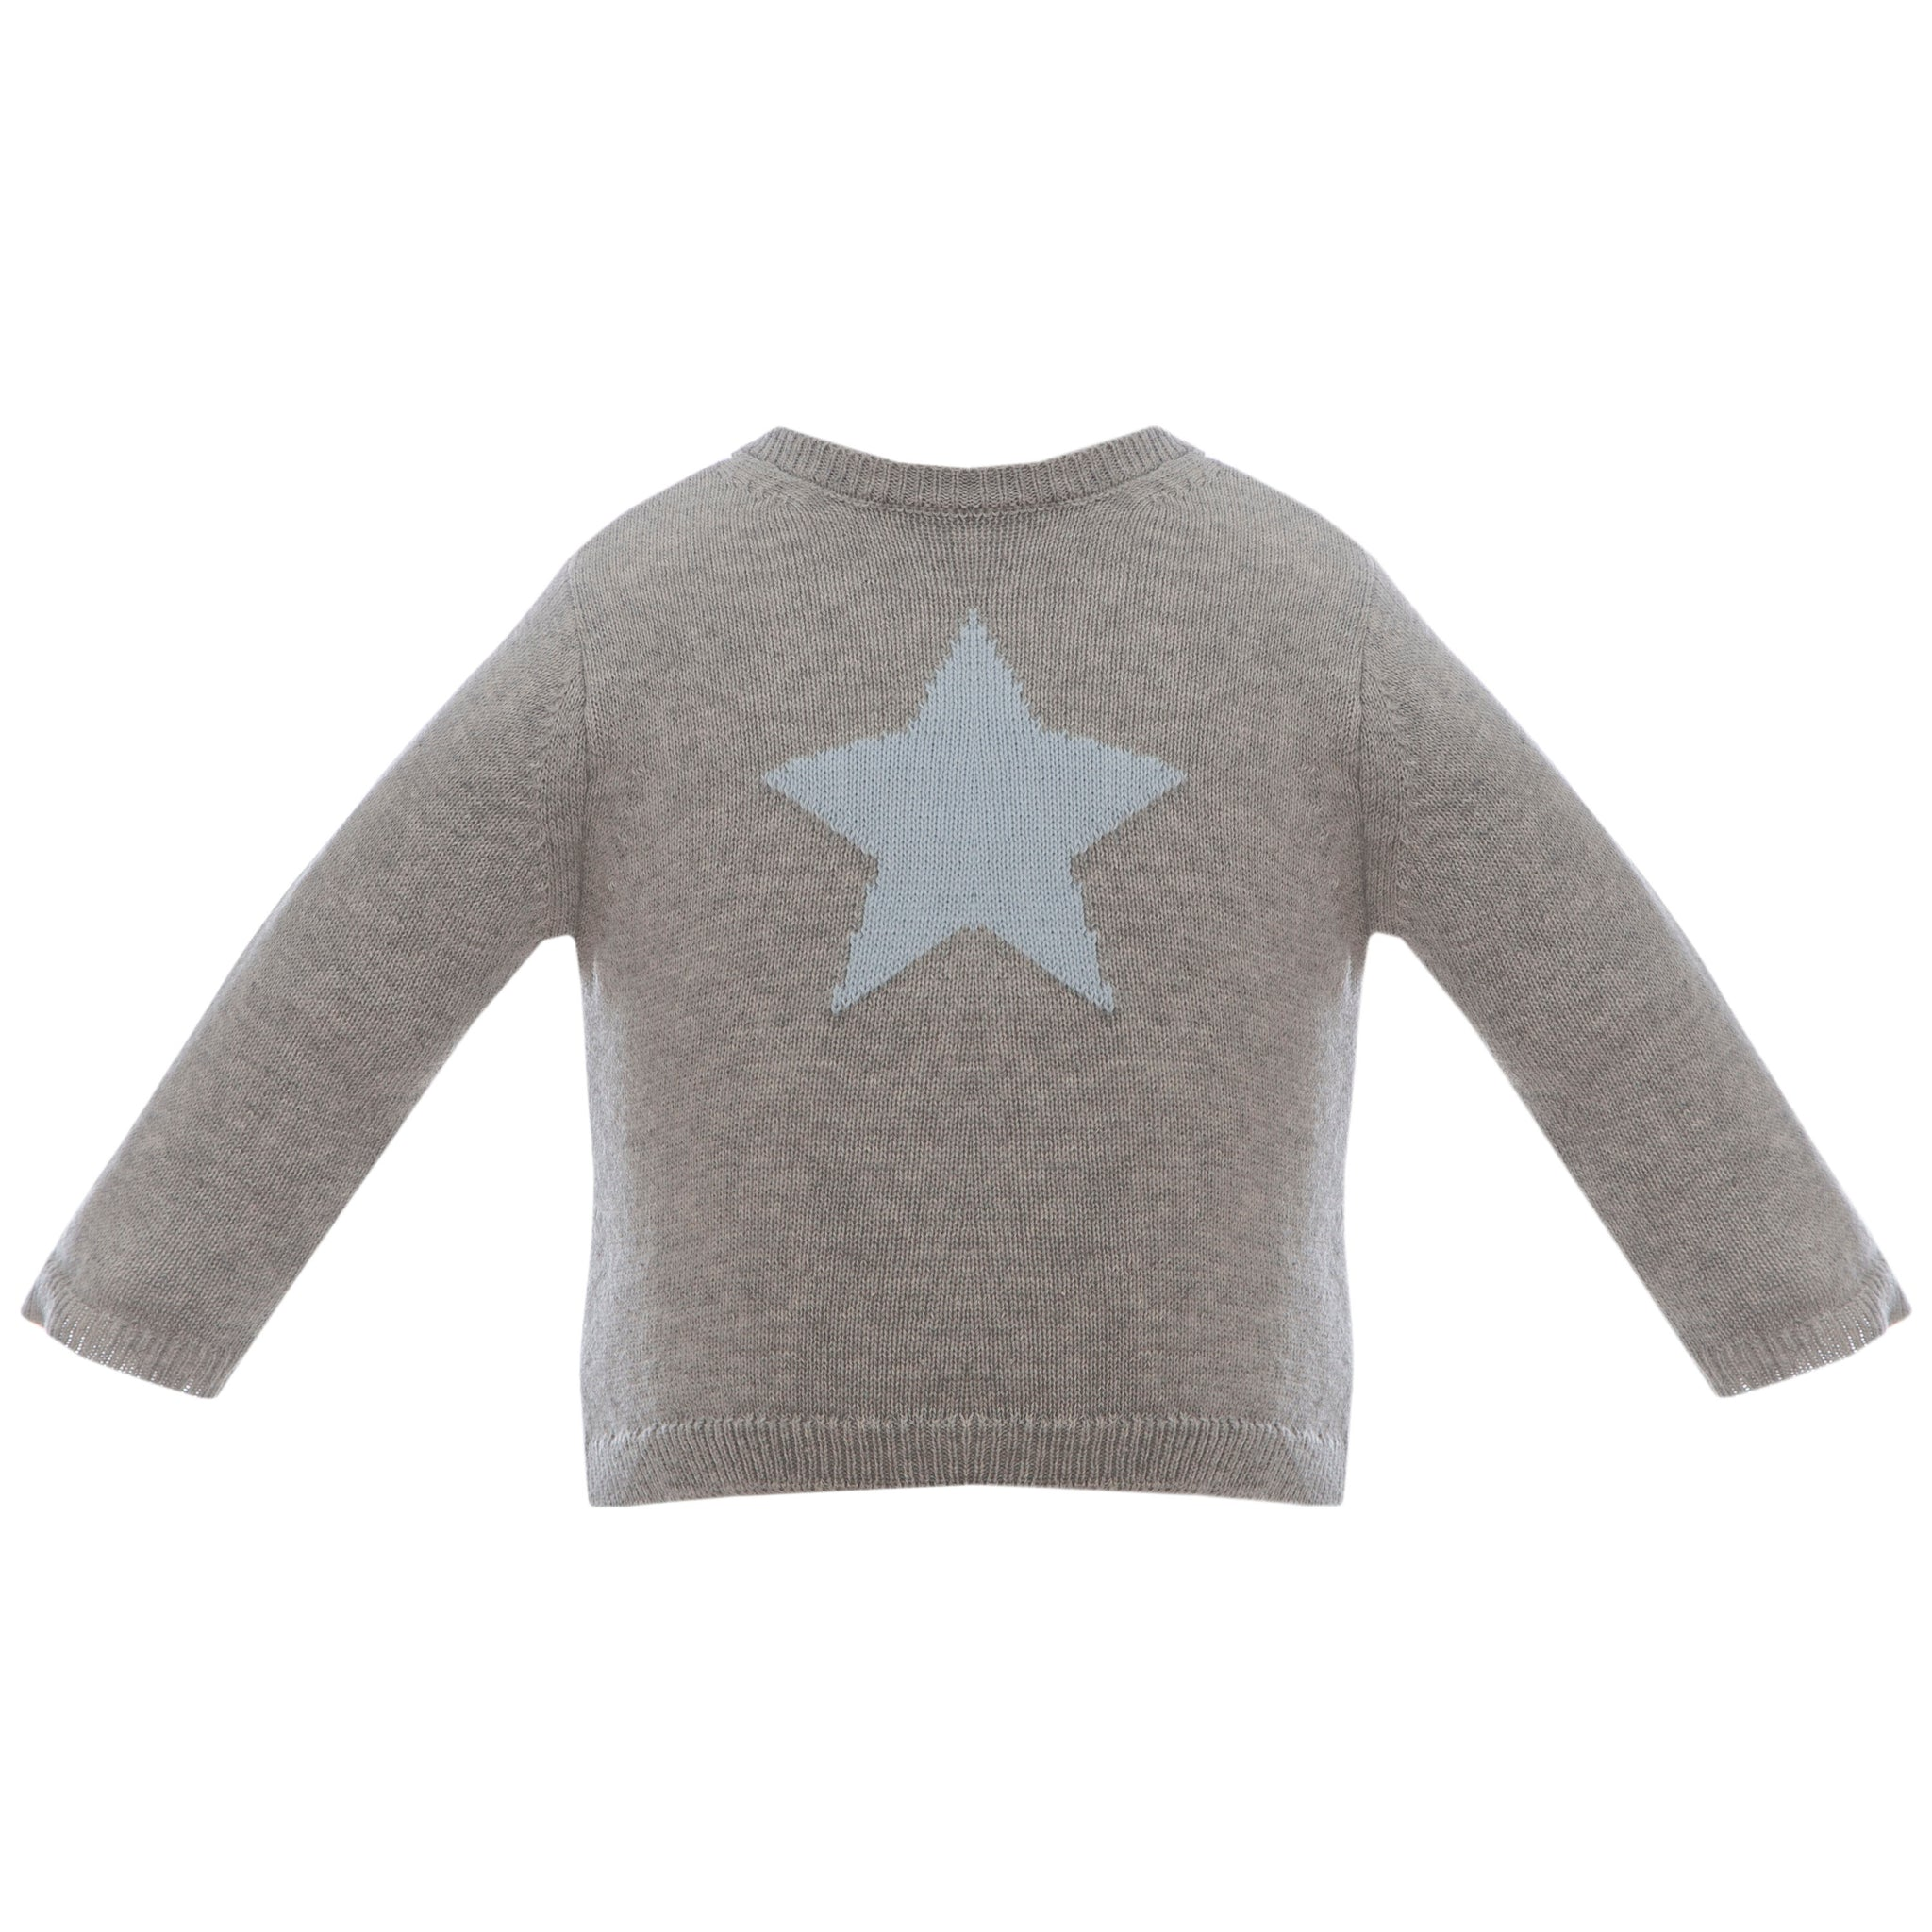 Boy's Cotton Star Sweater